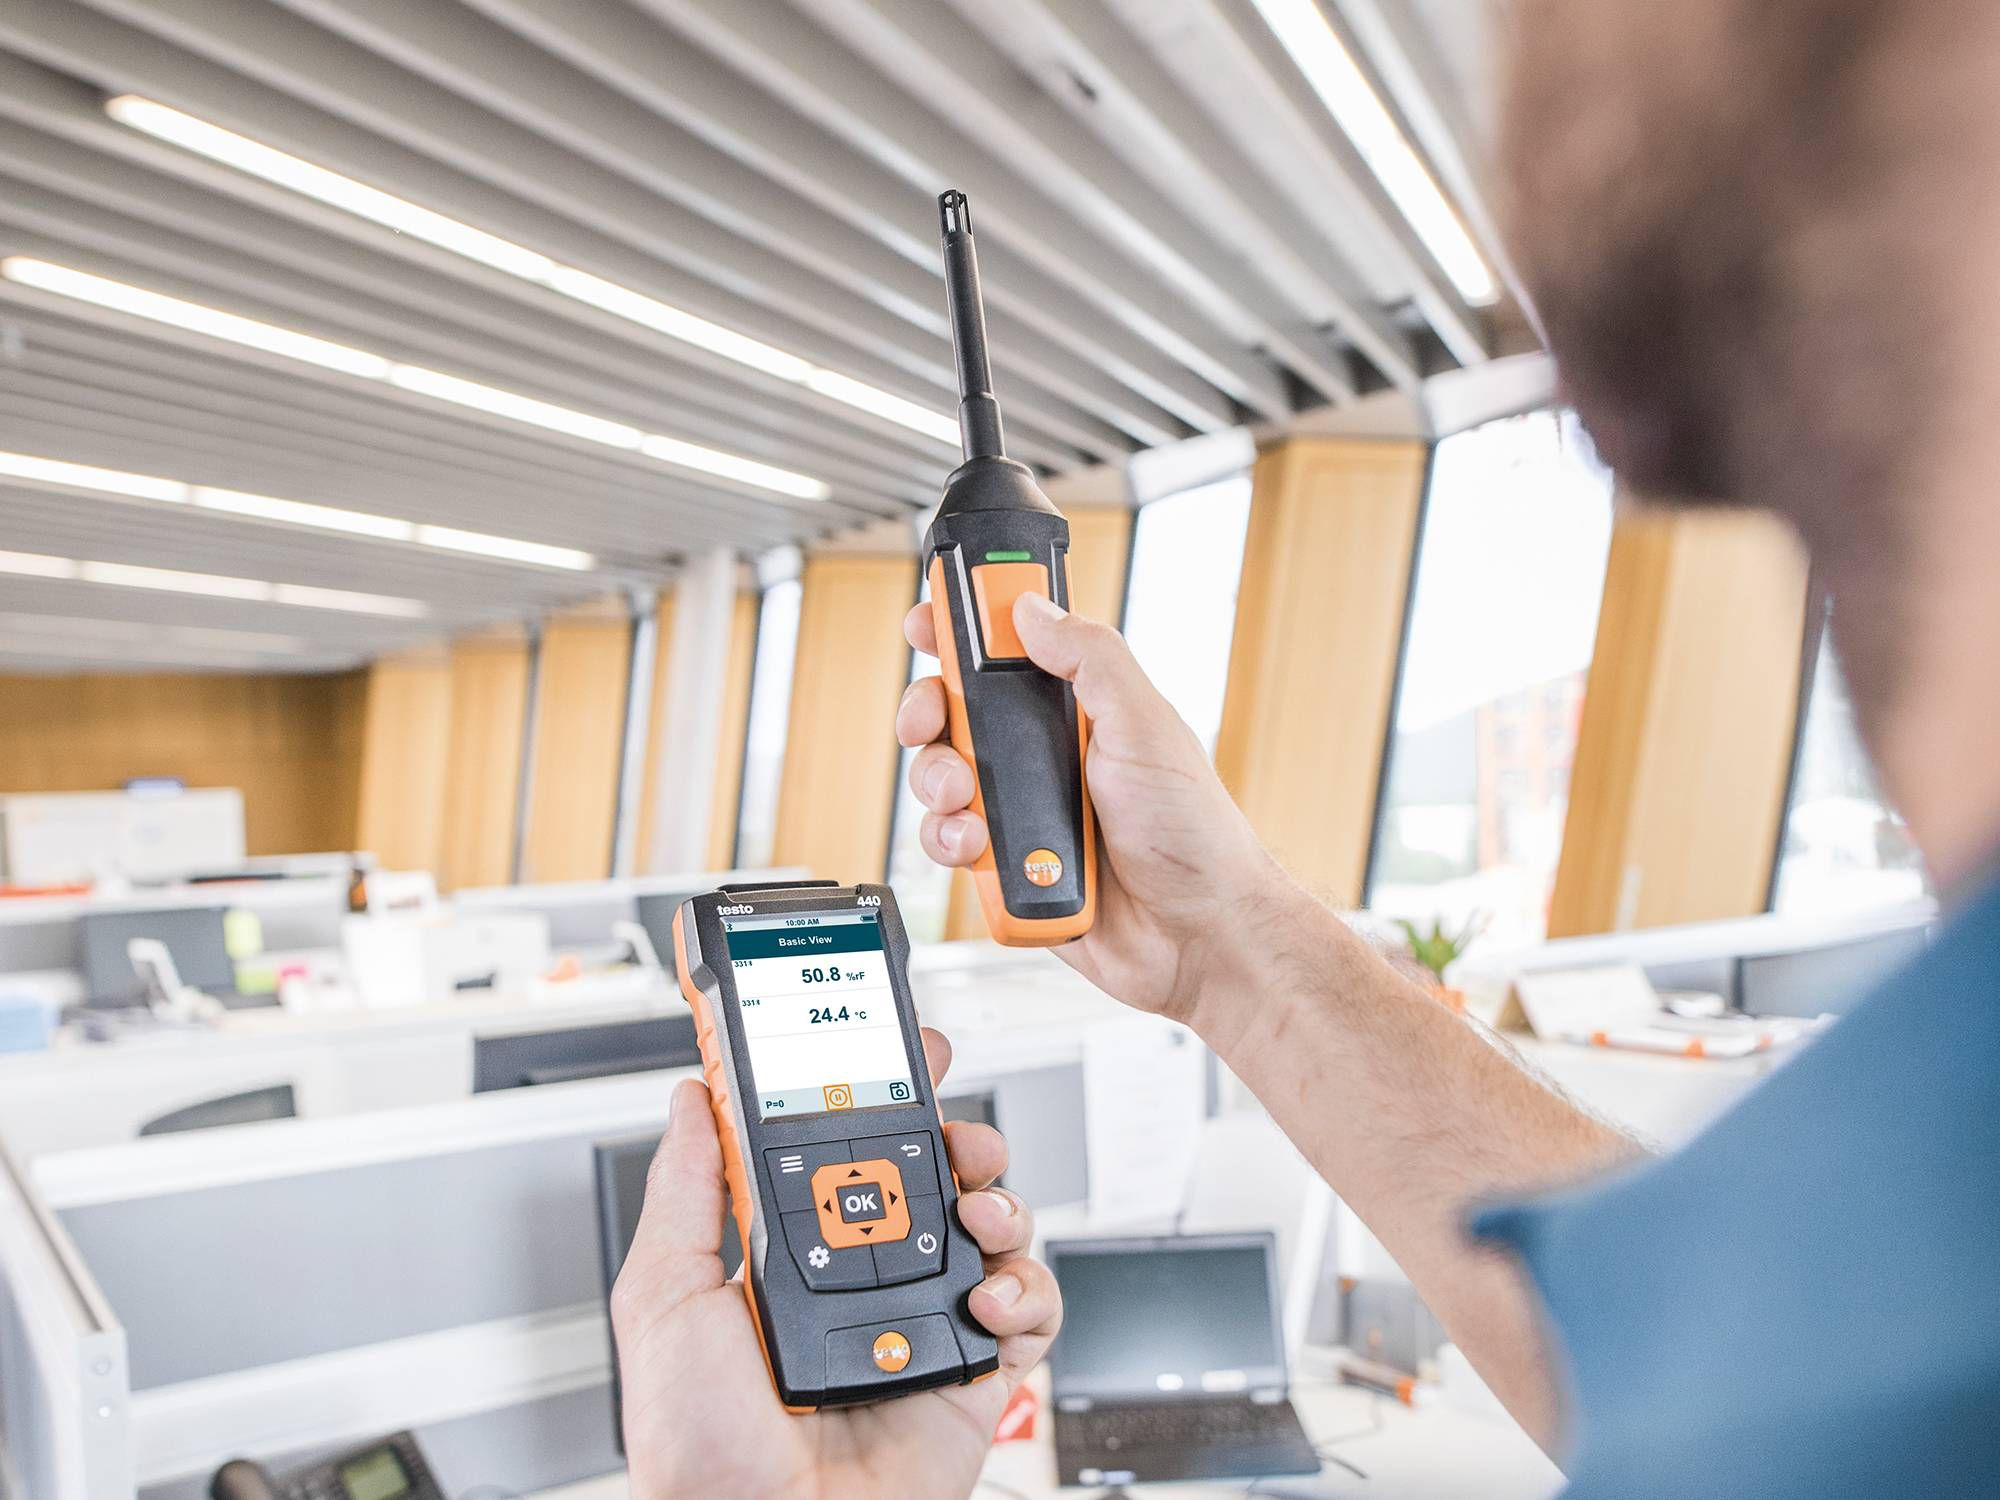 Measure humidity using the testo 440 air velocity & IAQ measuring instrument